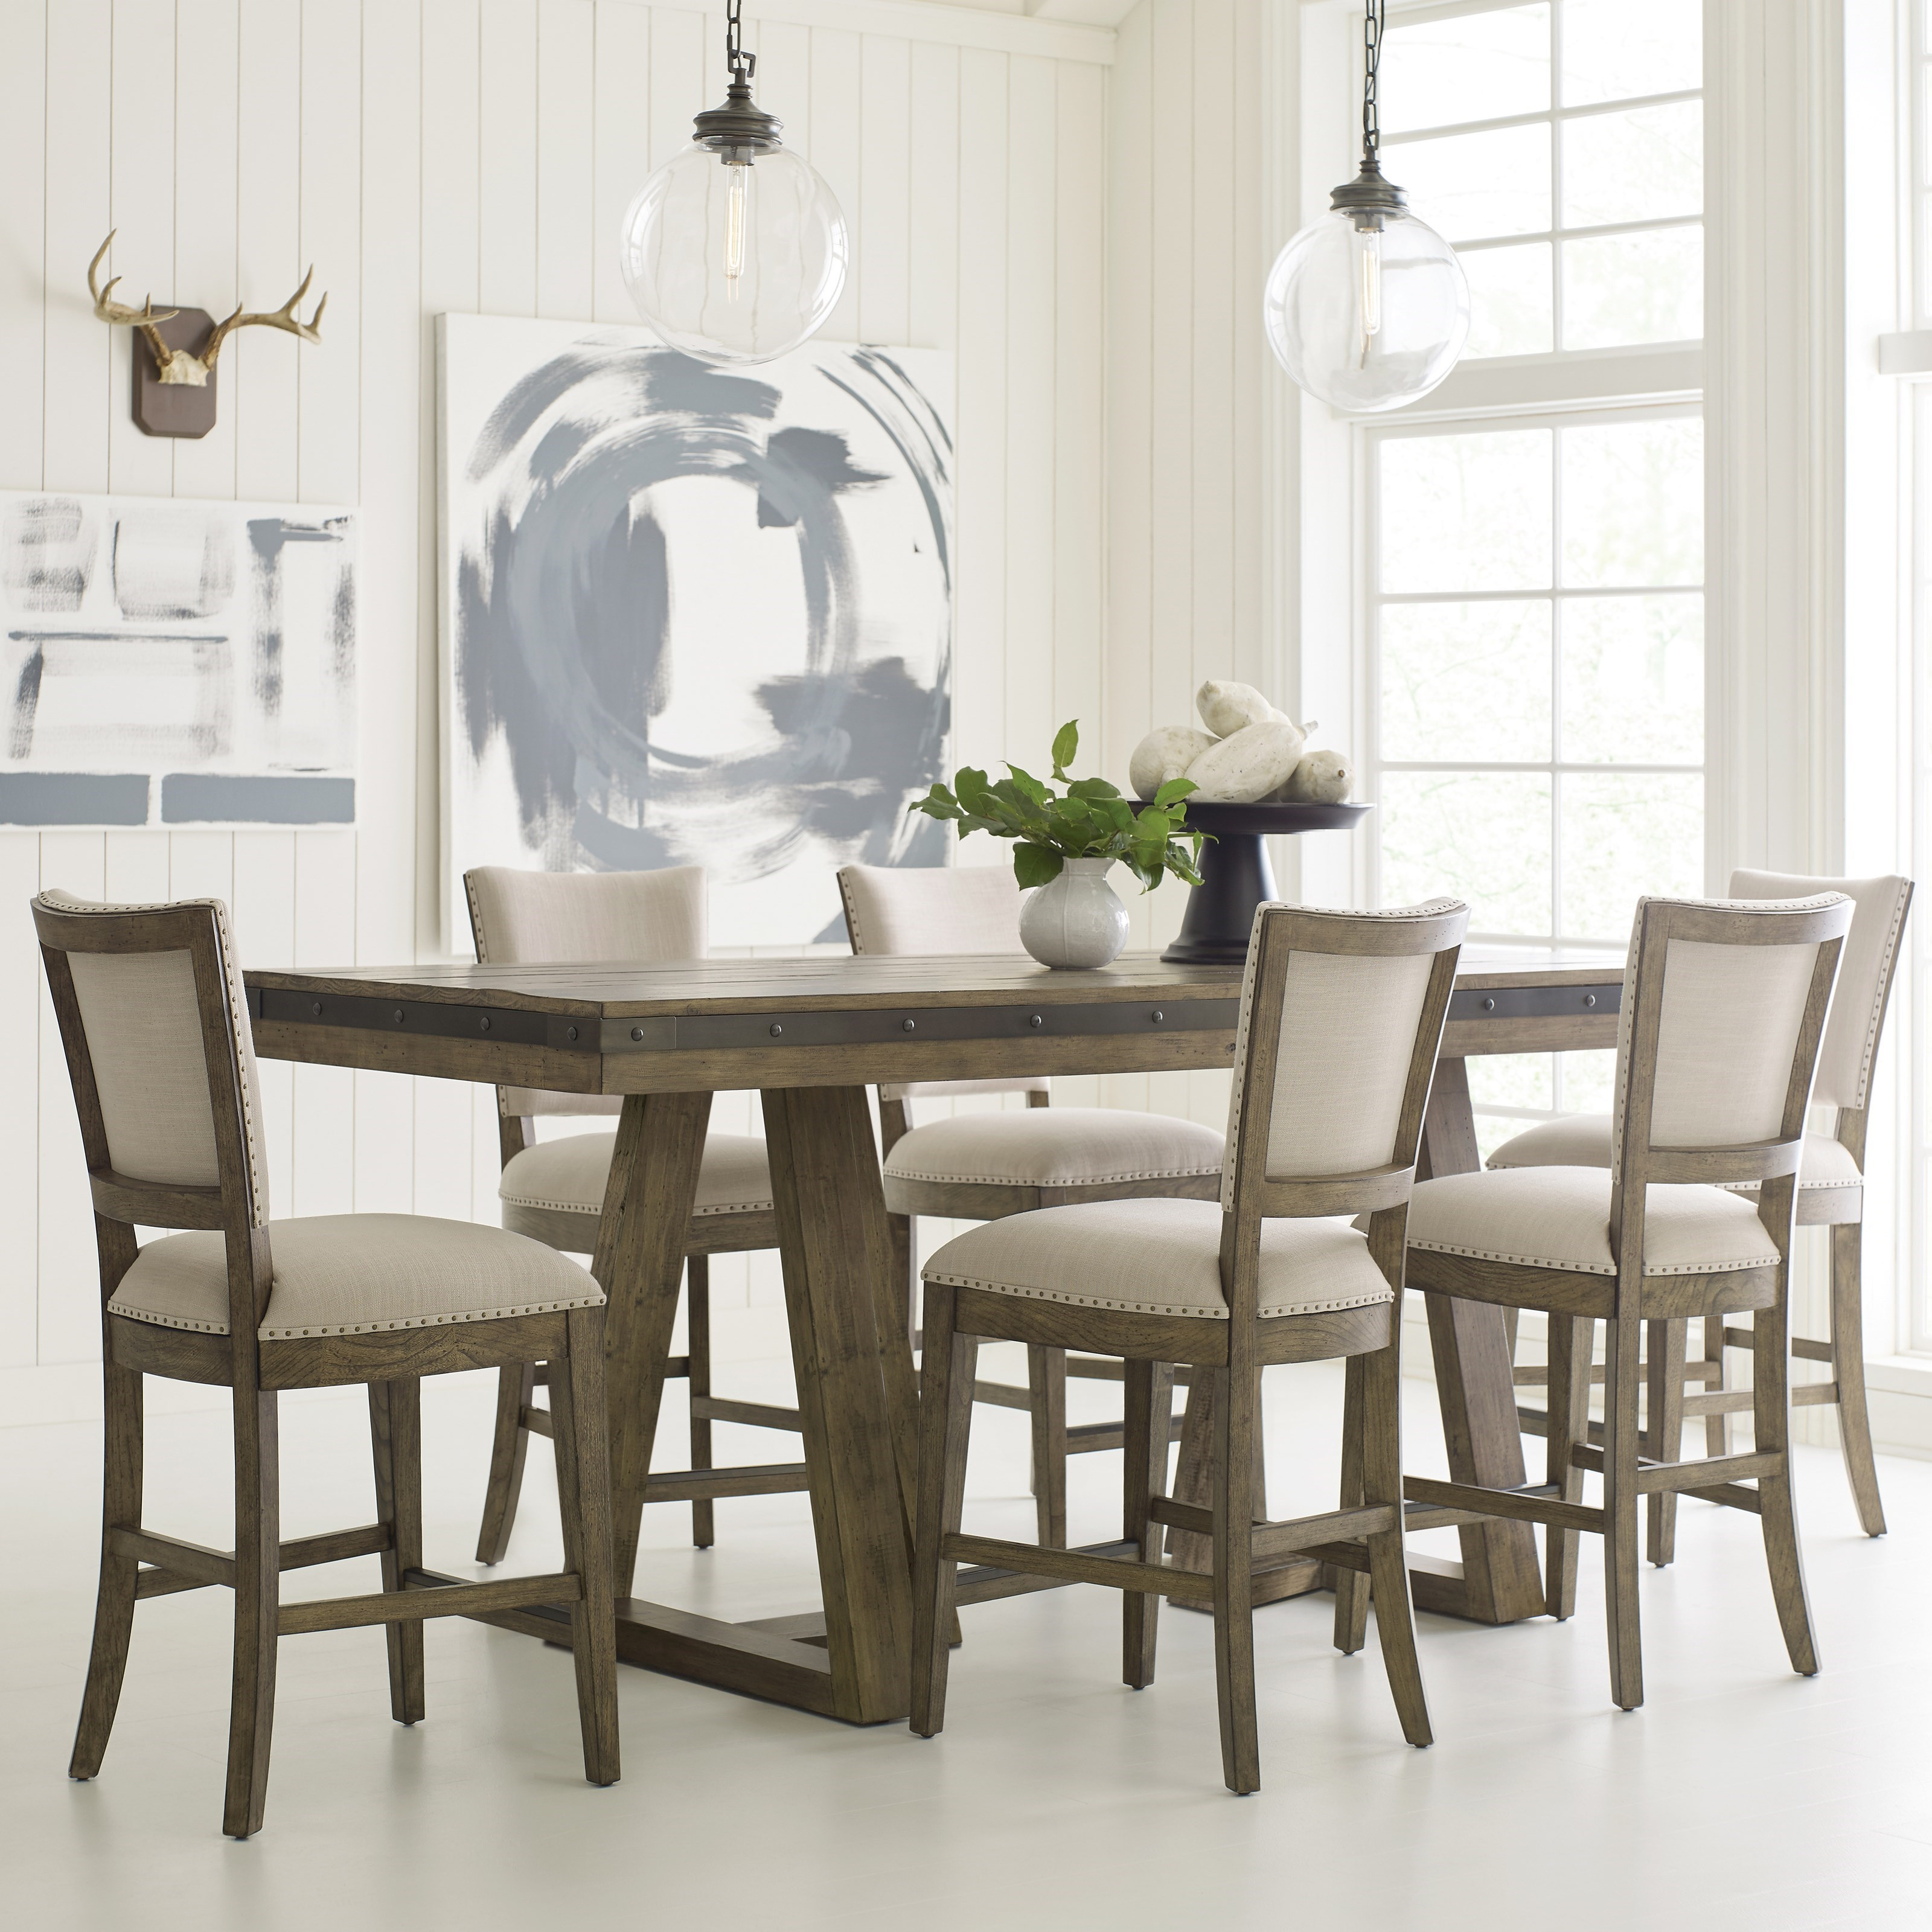 Plank Road 7 Pc Counter Height Dining Set at Stoney Creek Furniture